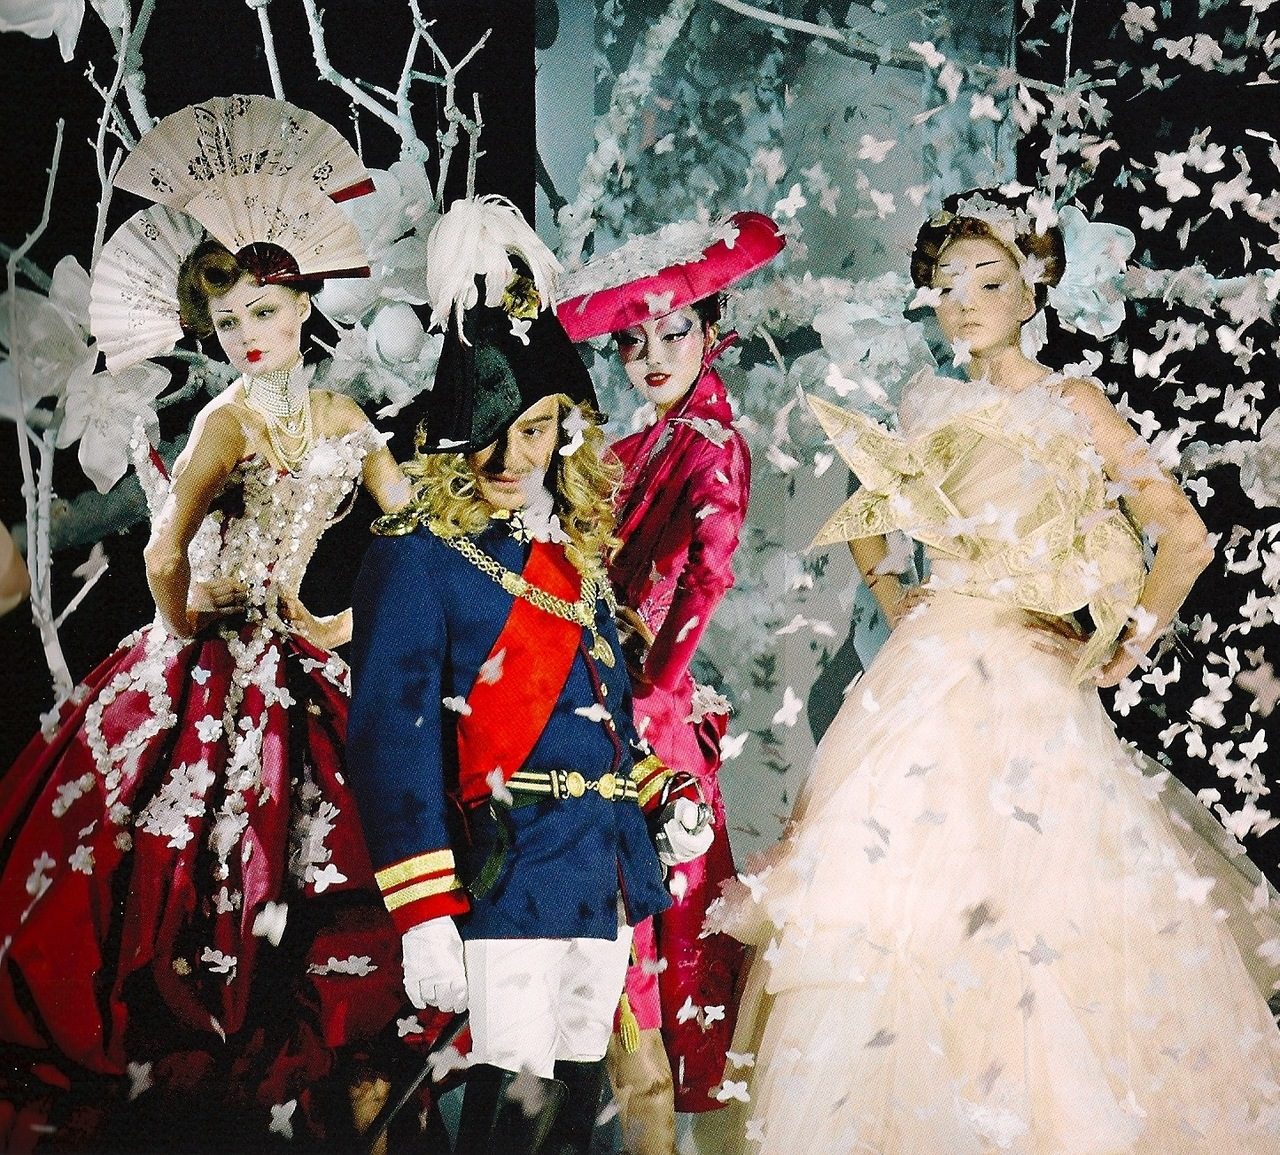 Yes, Mr. Dior. Designer John Galliano for DIor Spring 2007 in over-the-top ensemble display.